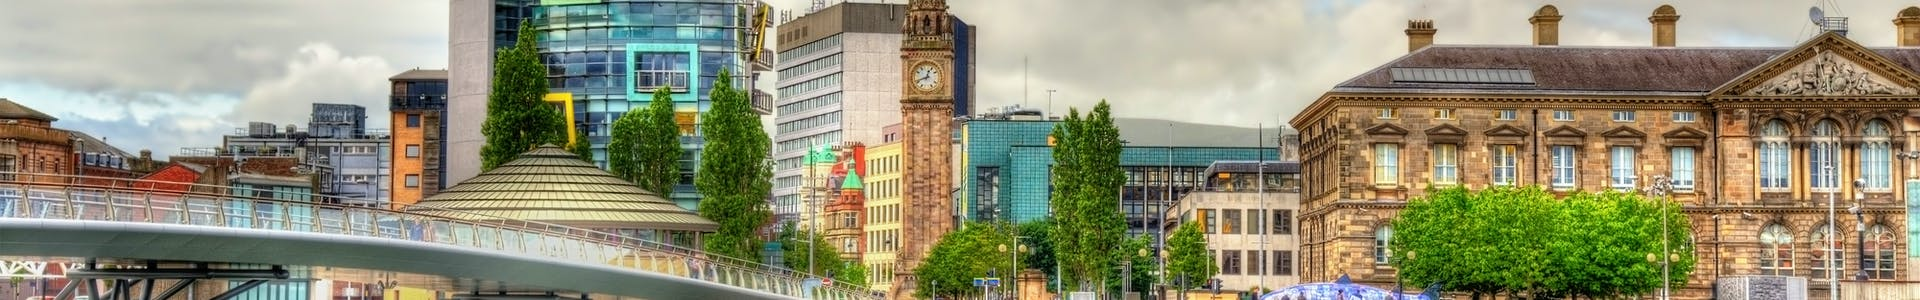 Studying in Belfast, United Kingdom